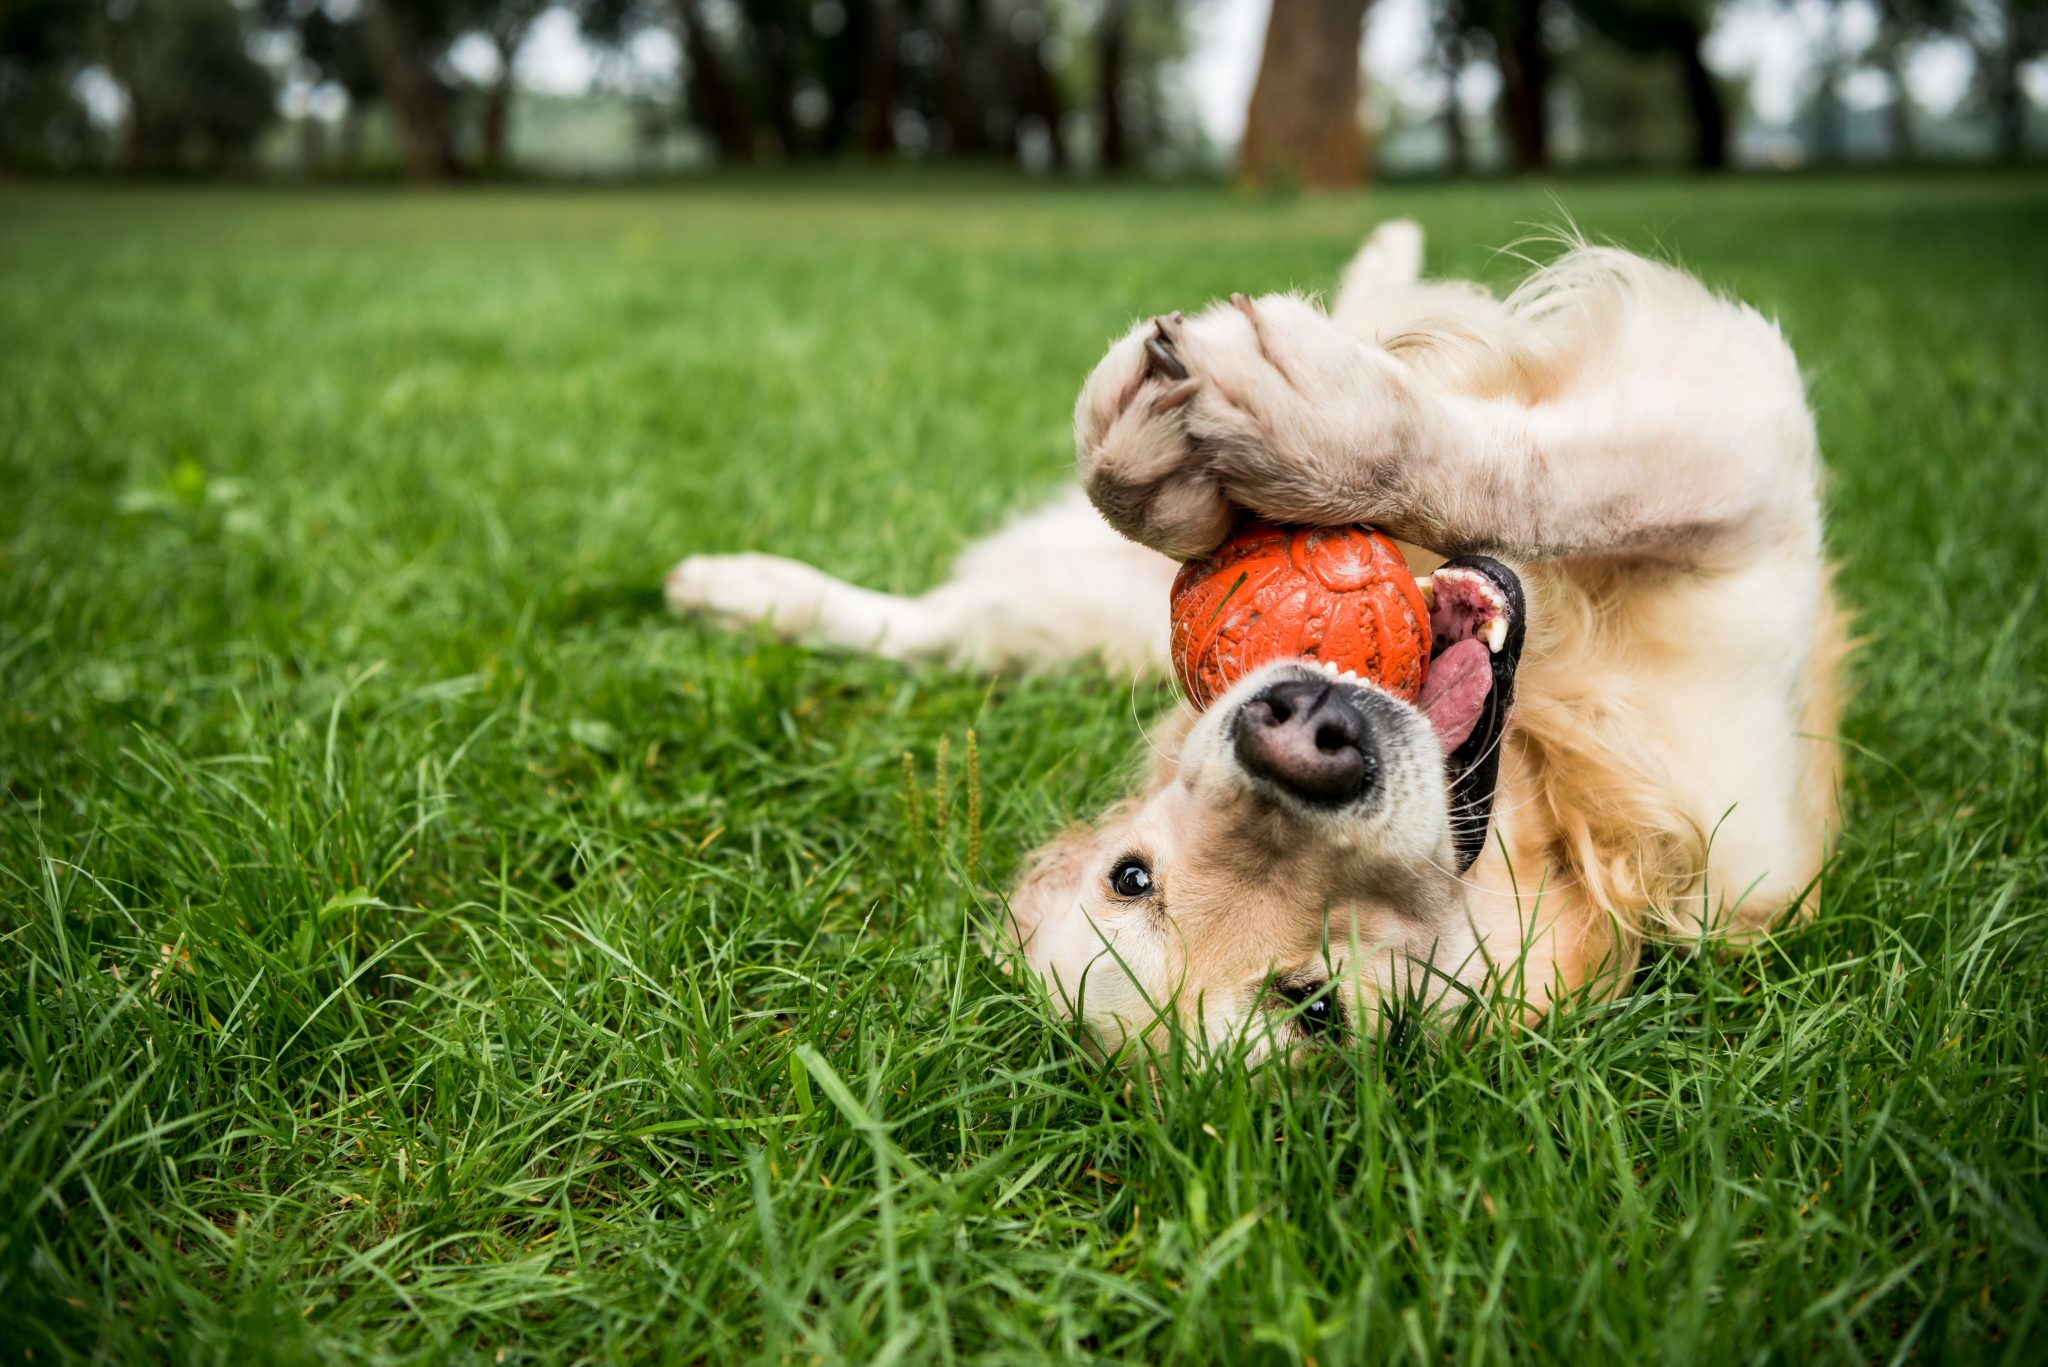 Dog rolling over with toy in grass park